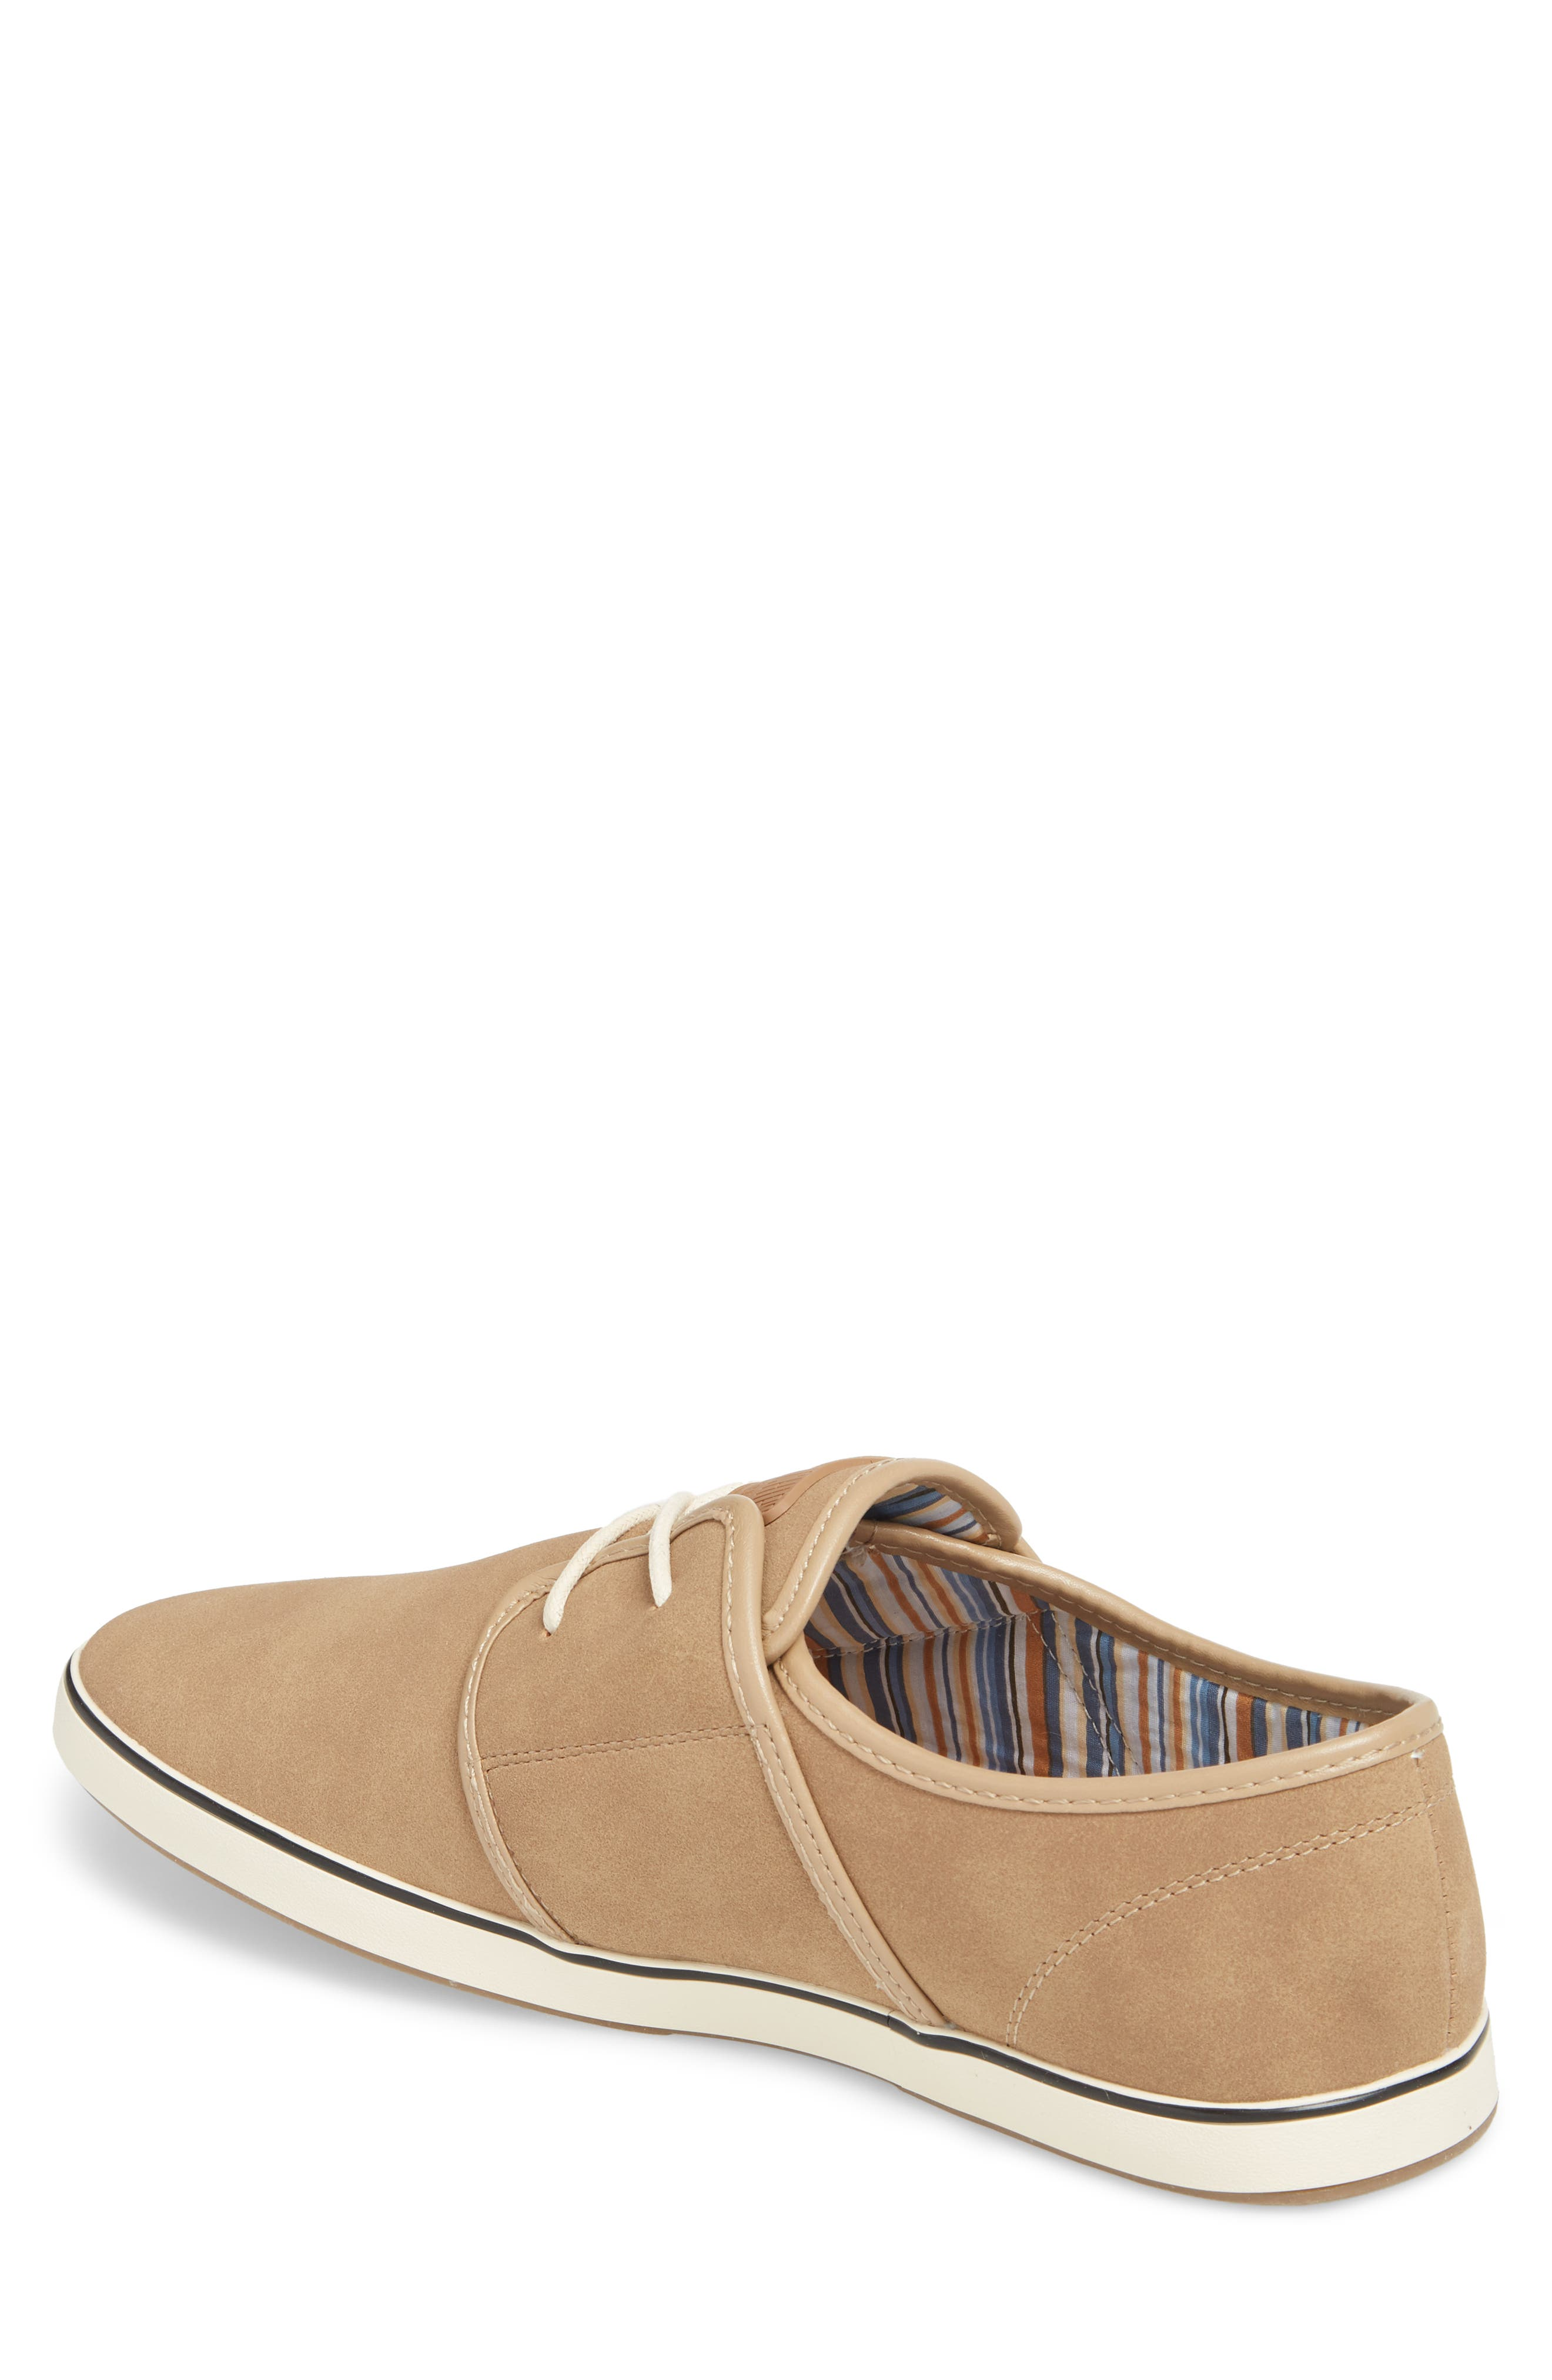 Fish 'N' Chips Surrey Low Top Sneaker,                             Alternate thumbnail 2, color,                             Soft Clay Faux Suede